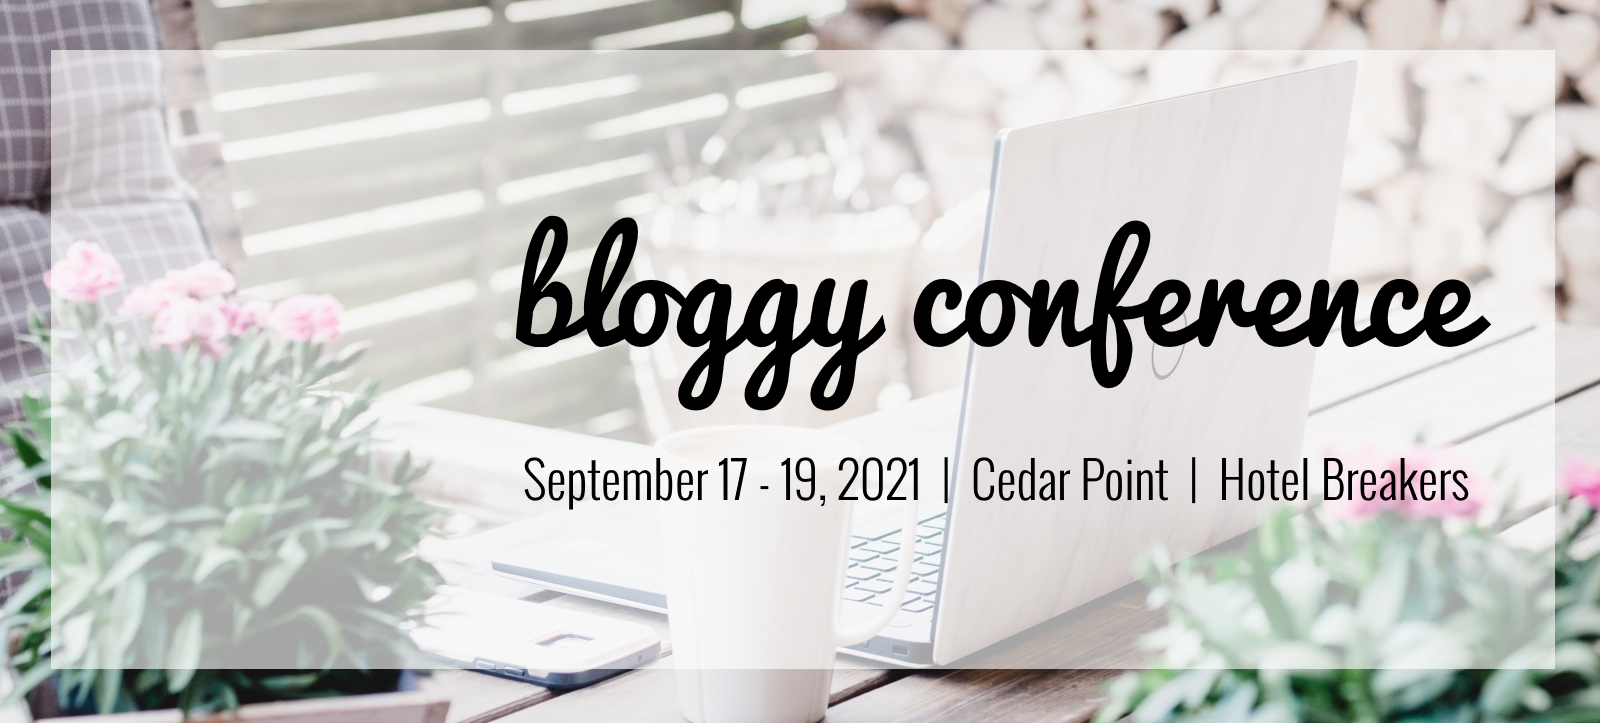 bloggy conference header 2021